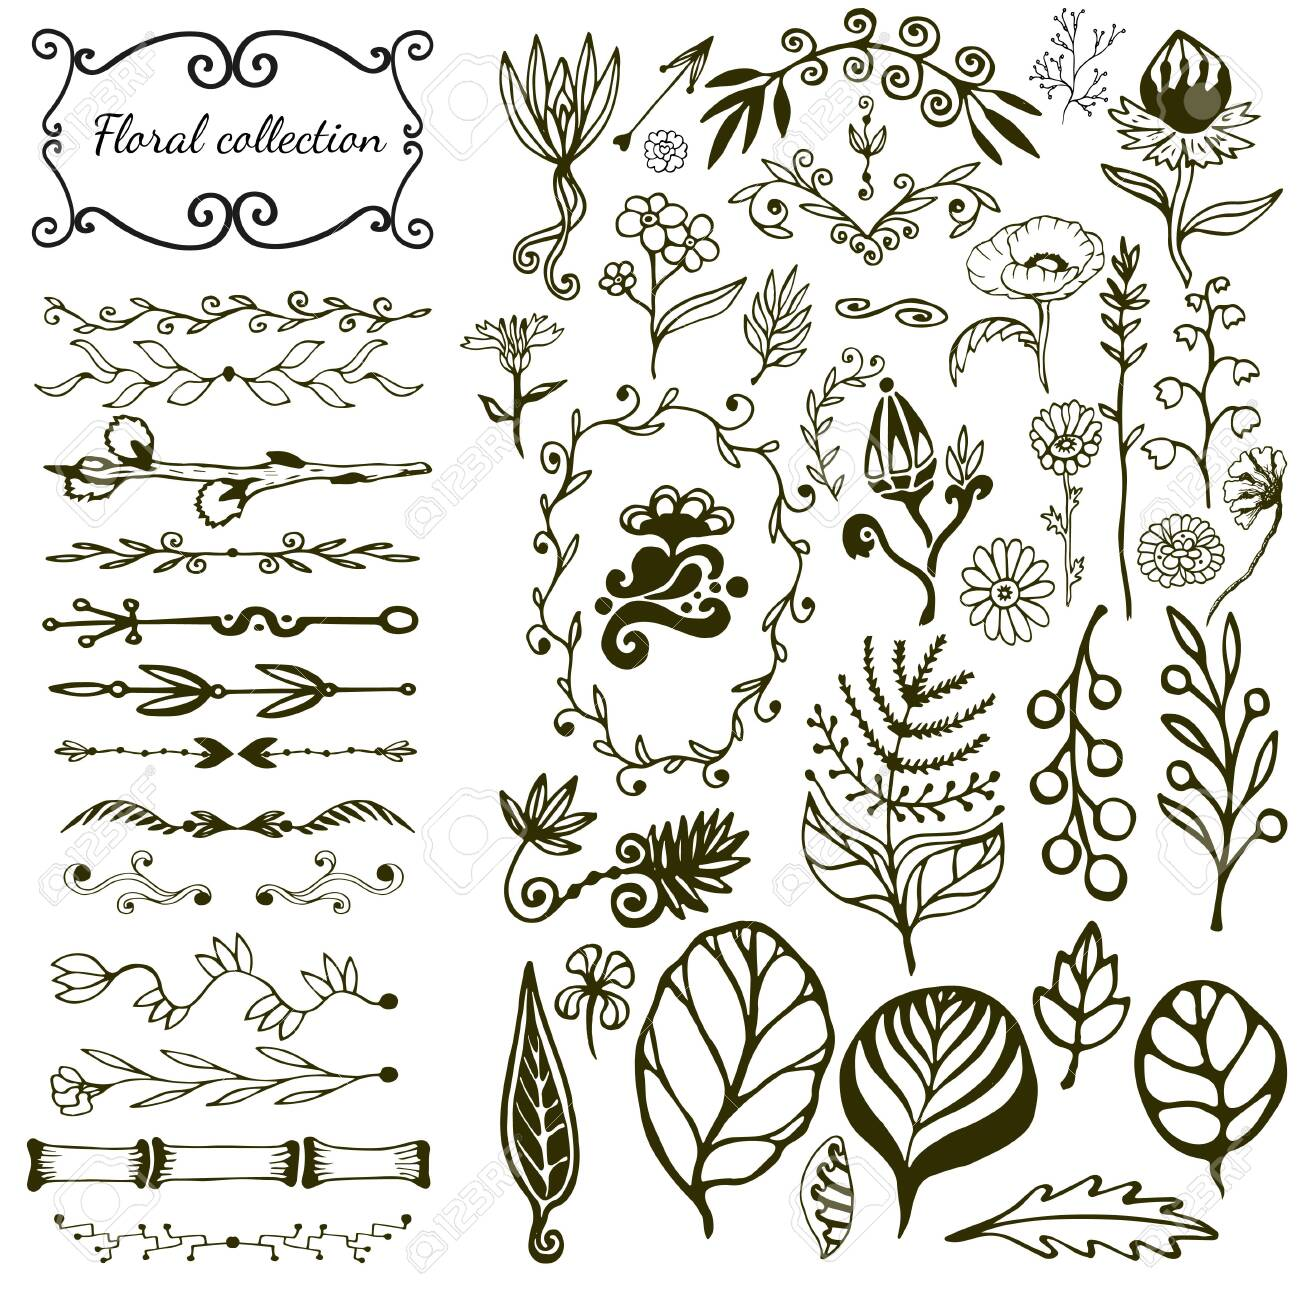 Hand drawn floral big set with wild flowers, leaves, swirls, border. Vector with nature elements collection for design decoration - 141033630